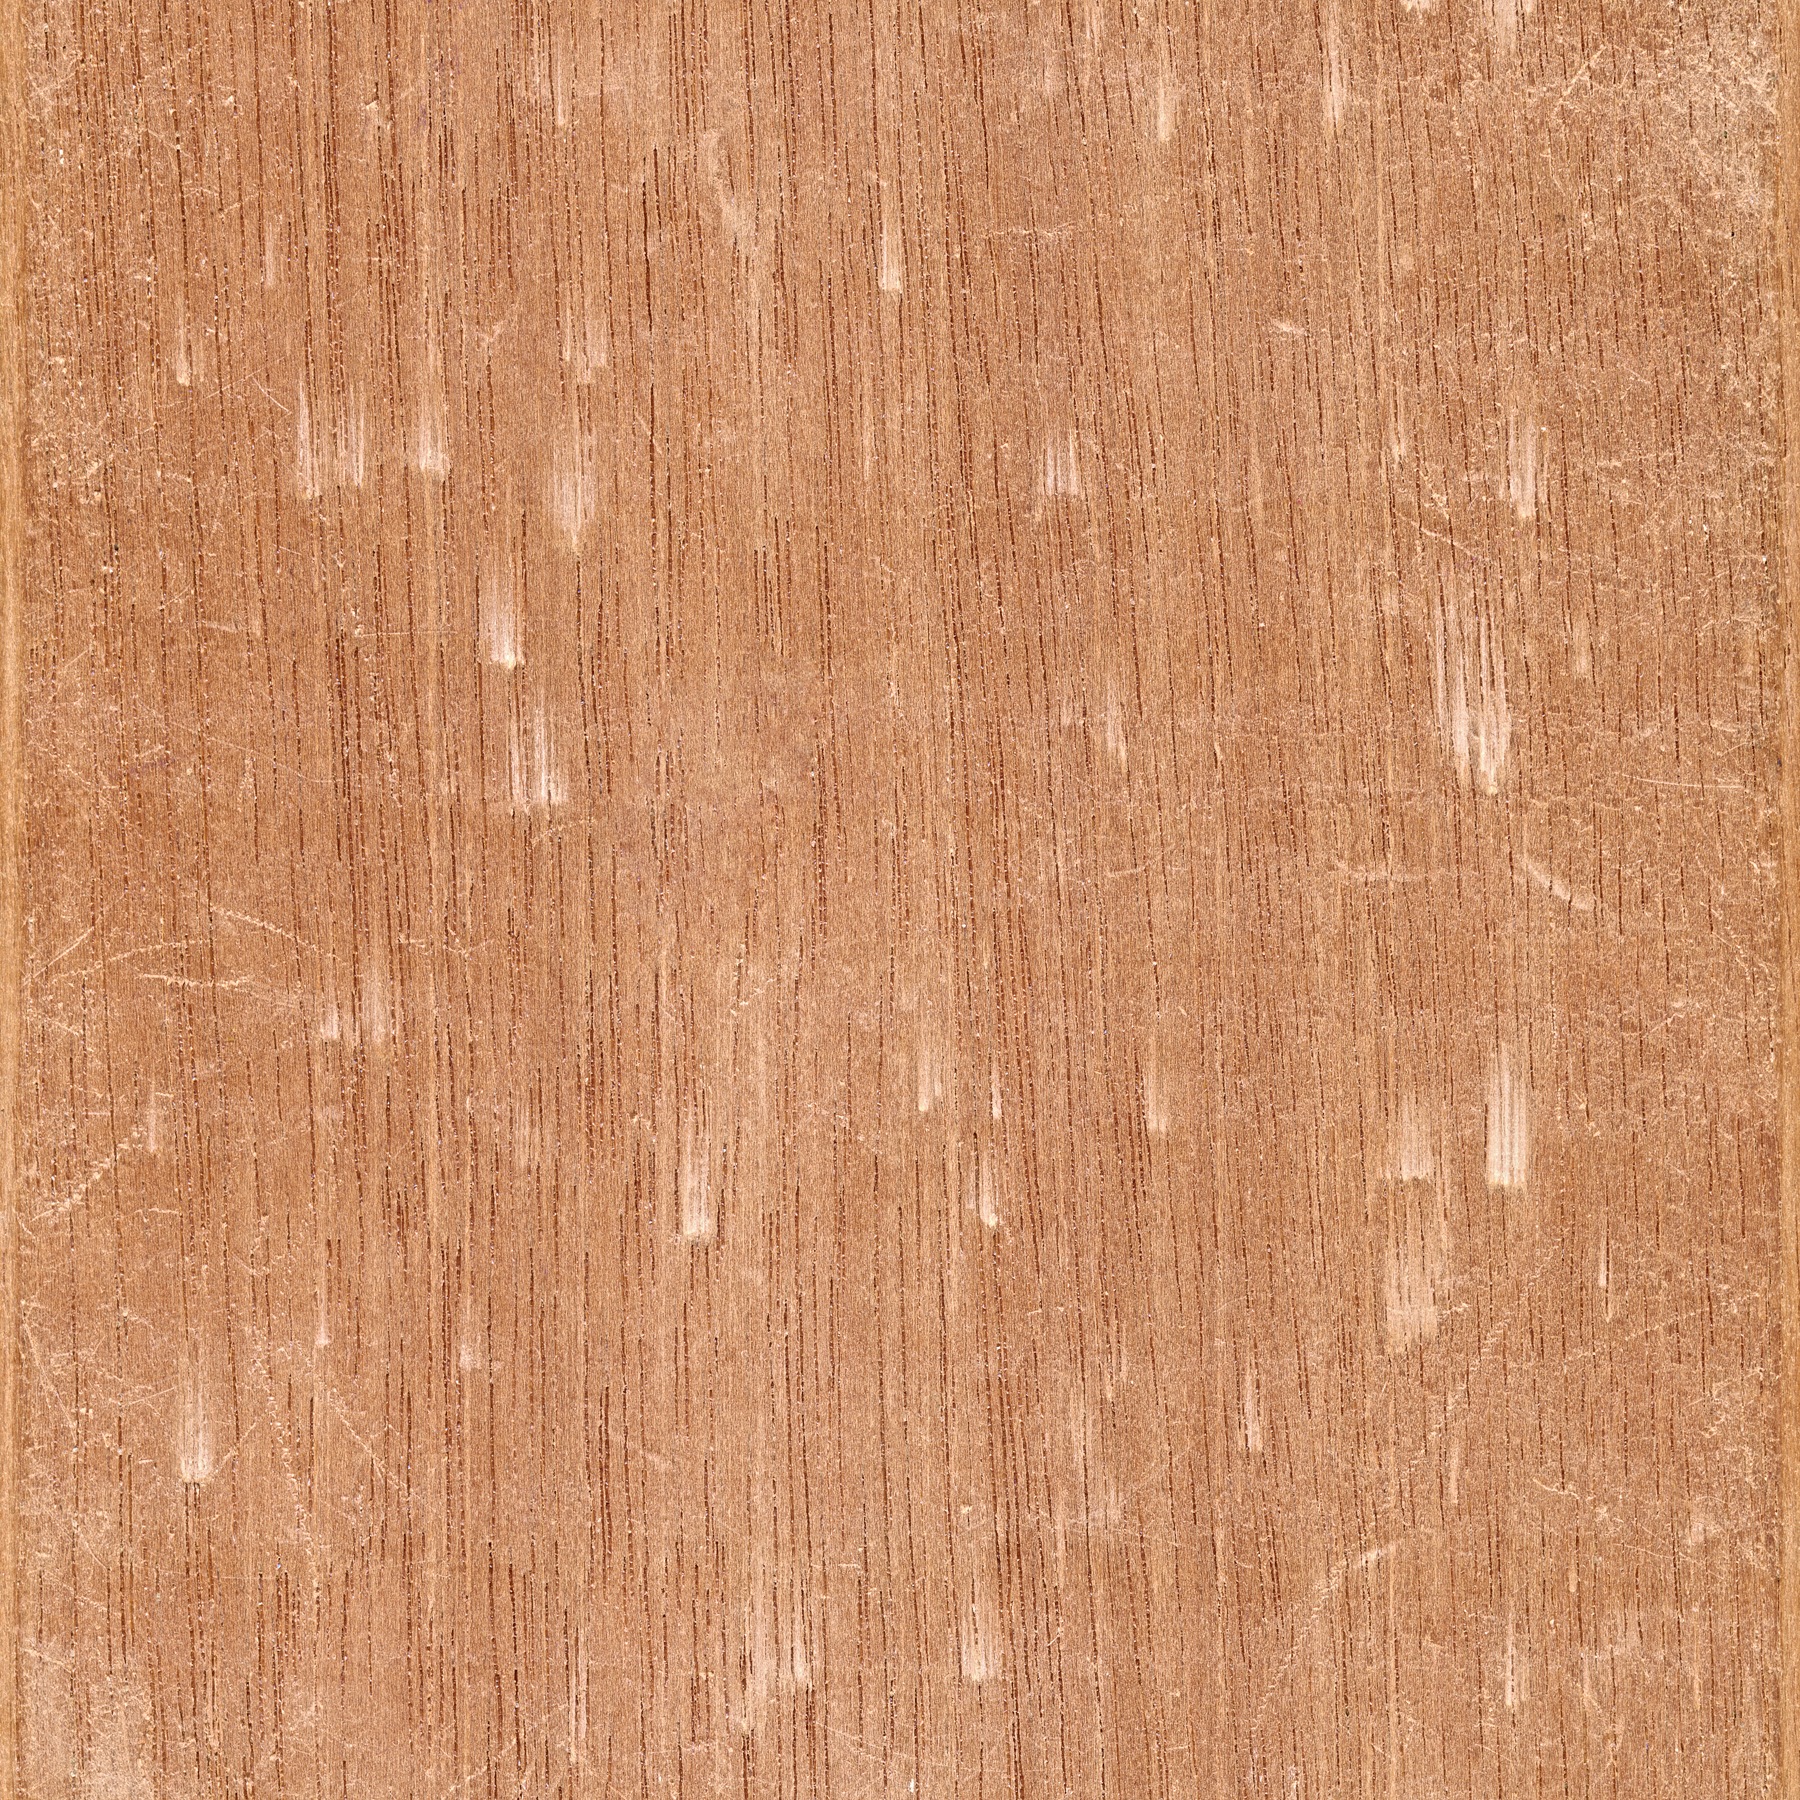 Distressed Wood Texture, Scratches, Stock, Surface, Scratched, HQ Photo